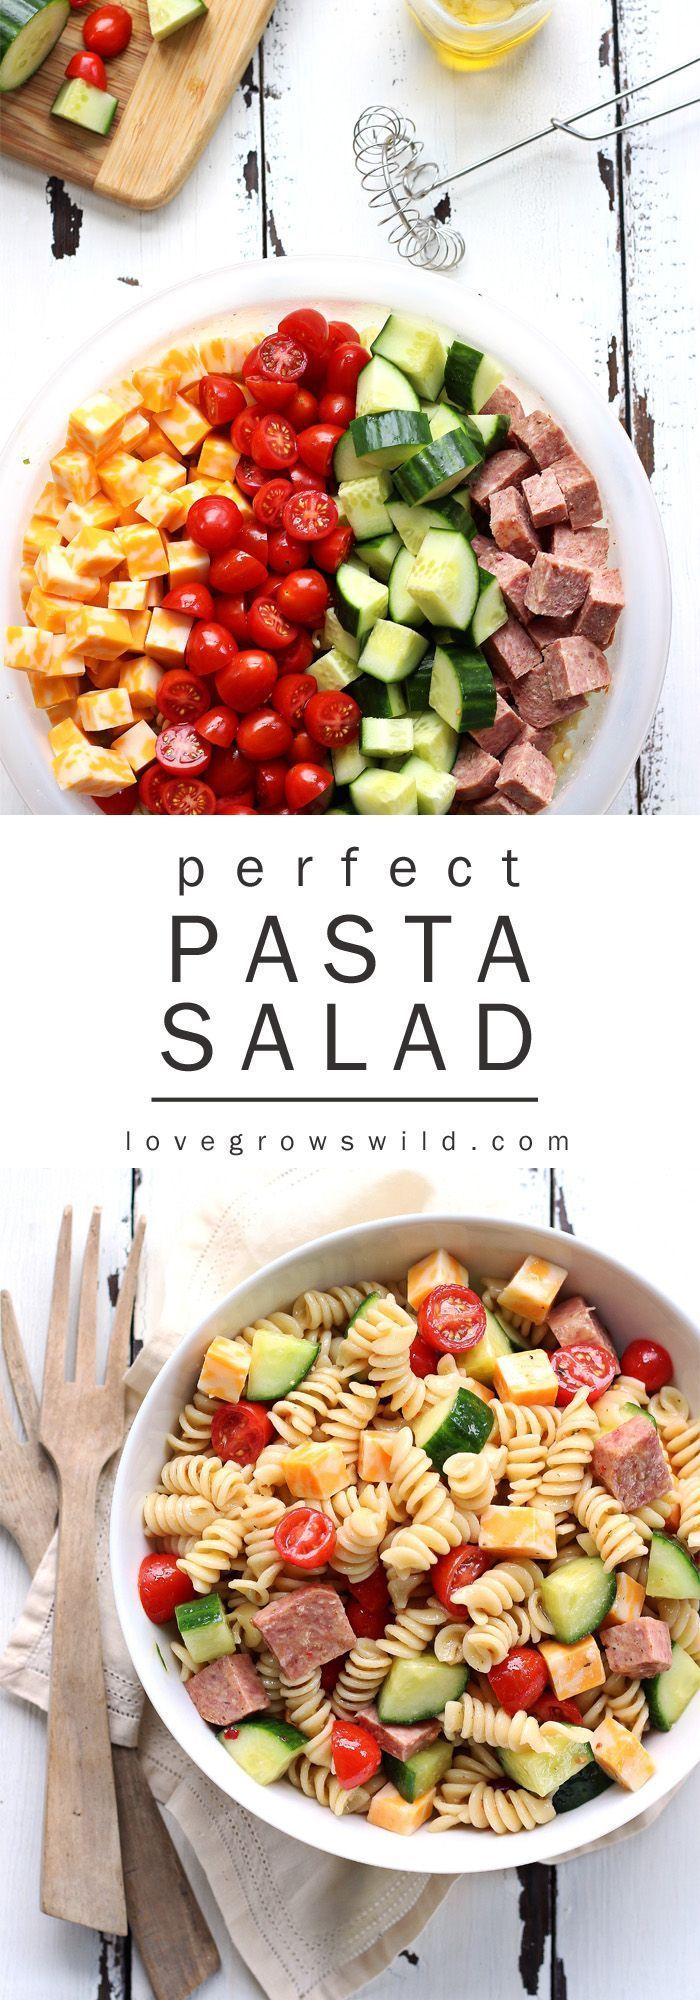 The perfect pasta salad recipe! Tender noodles tossed in a zesty Italian dressin The perfect pasta salad recipe! Tender noodles tossed in a zesty Italian dressin...